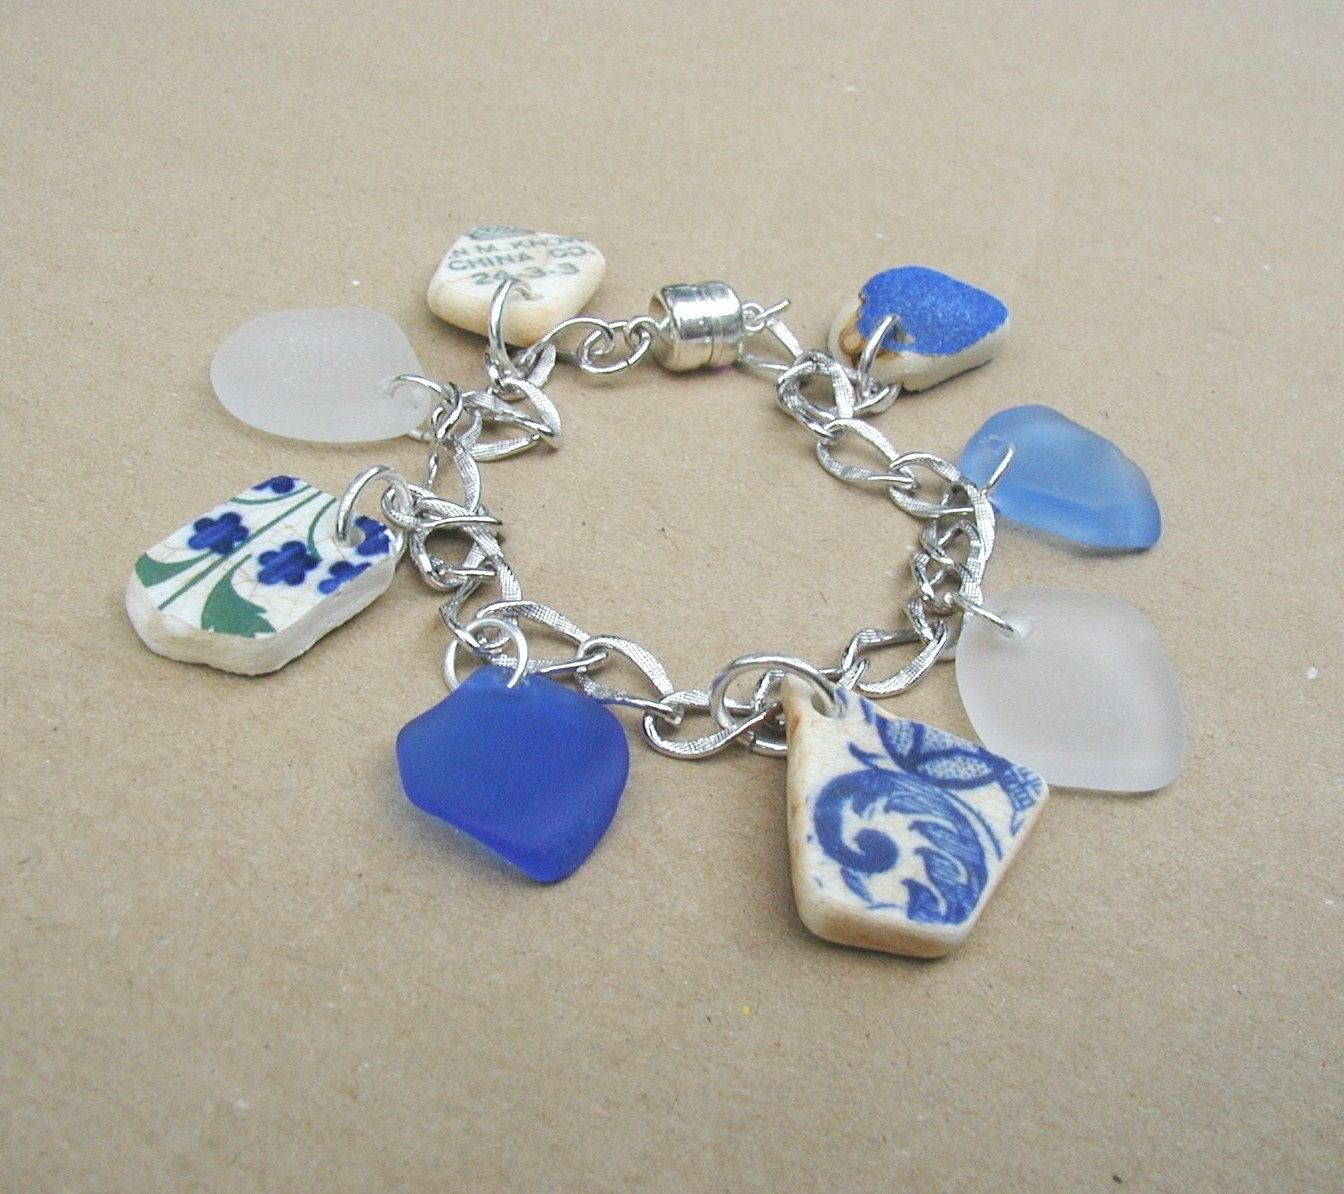 Lucky Charms - Cobalt Blue Sea Glass and Vintage Pottery Charm Bracelet